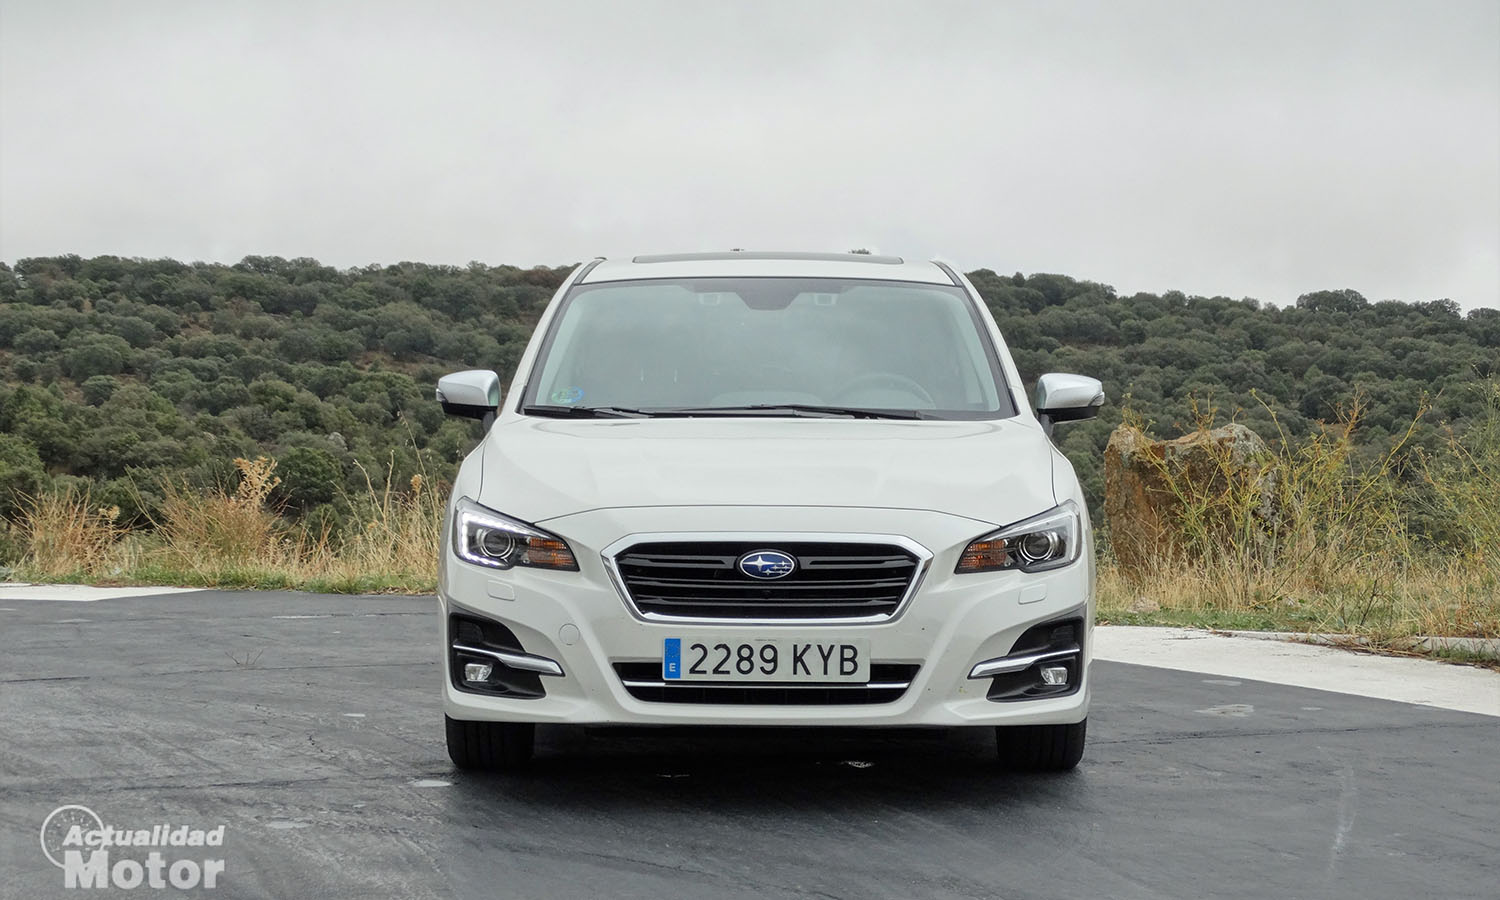 Prueba Subaru Levorg Executive Plus Eco Bi-Fuel frontal